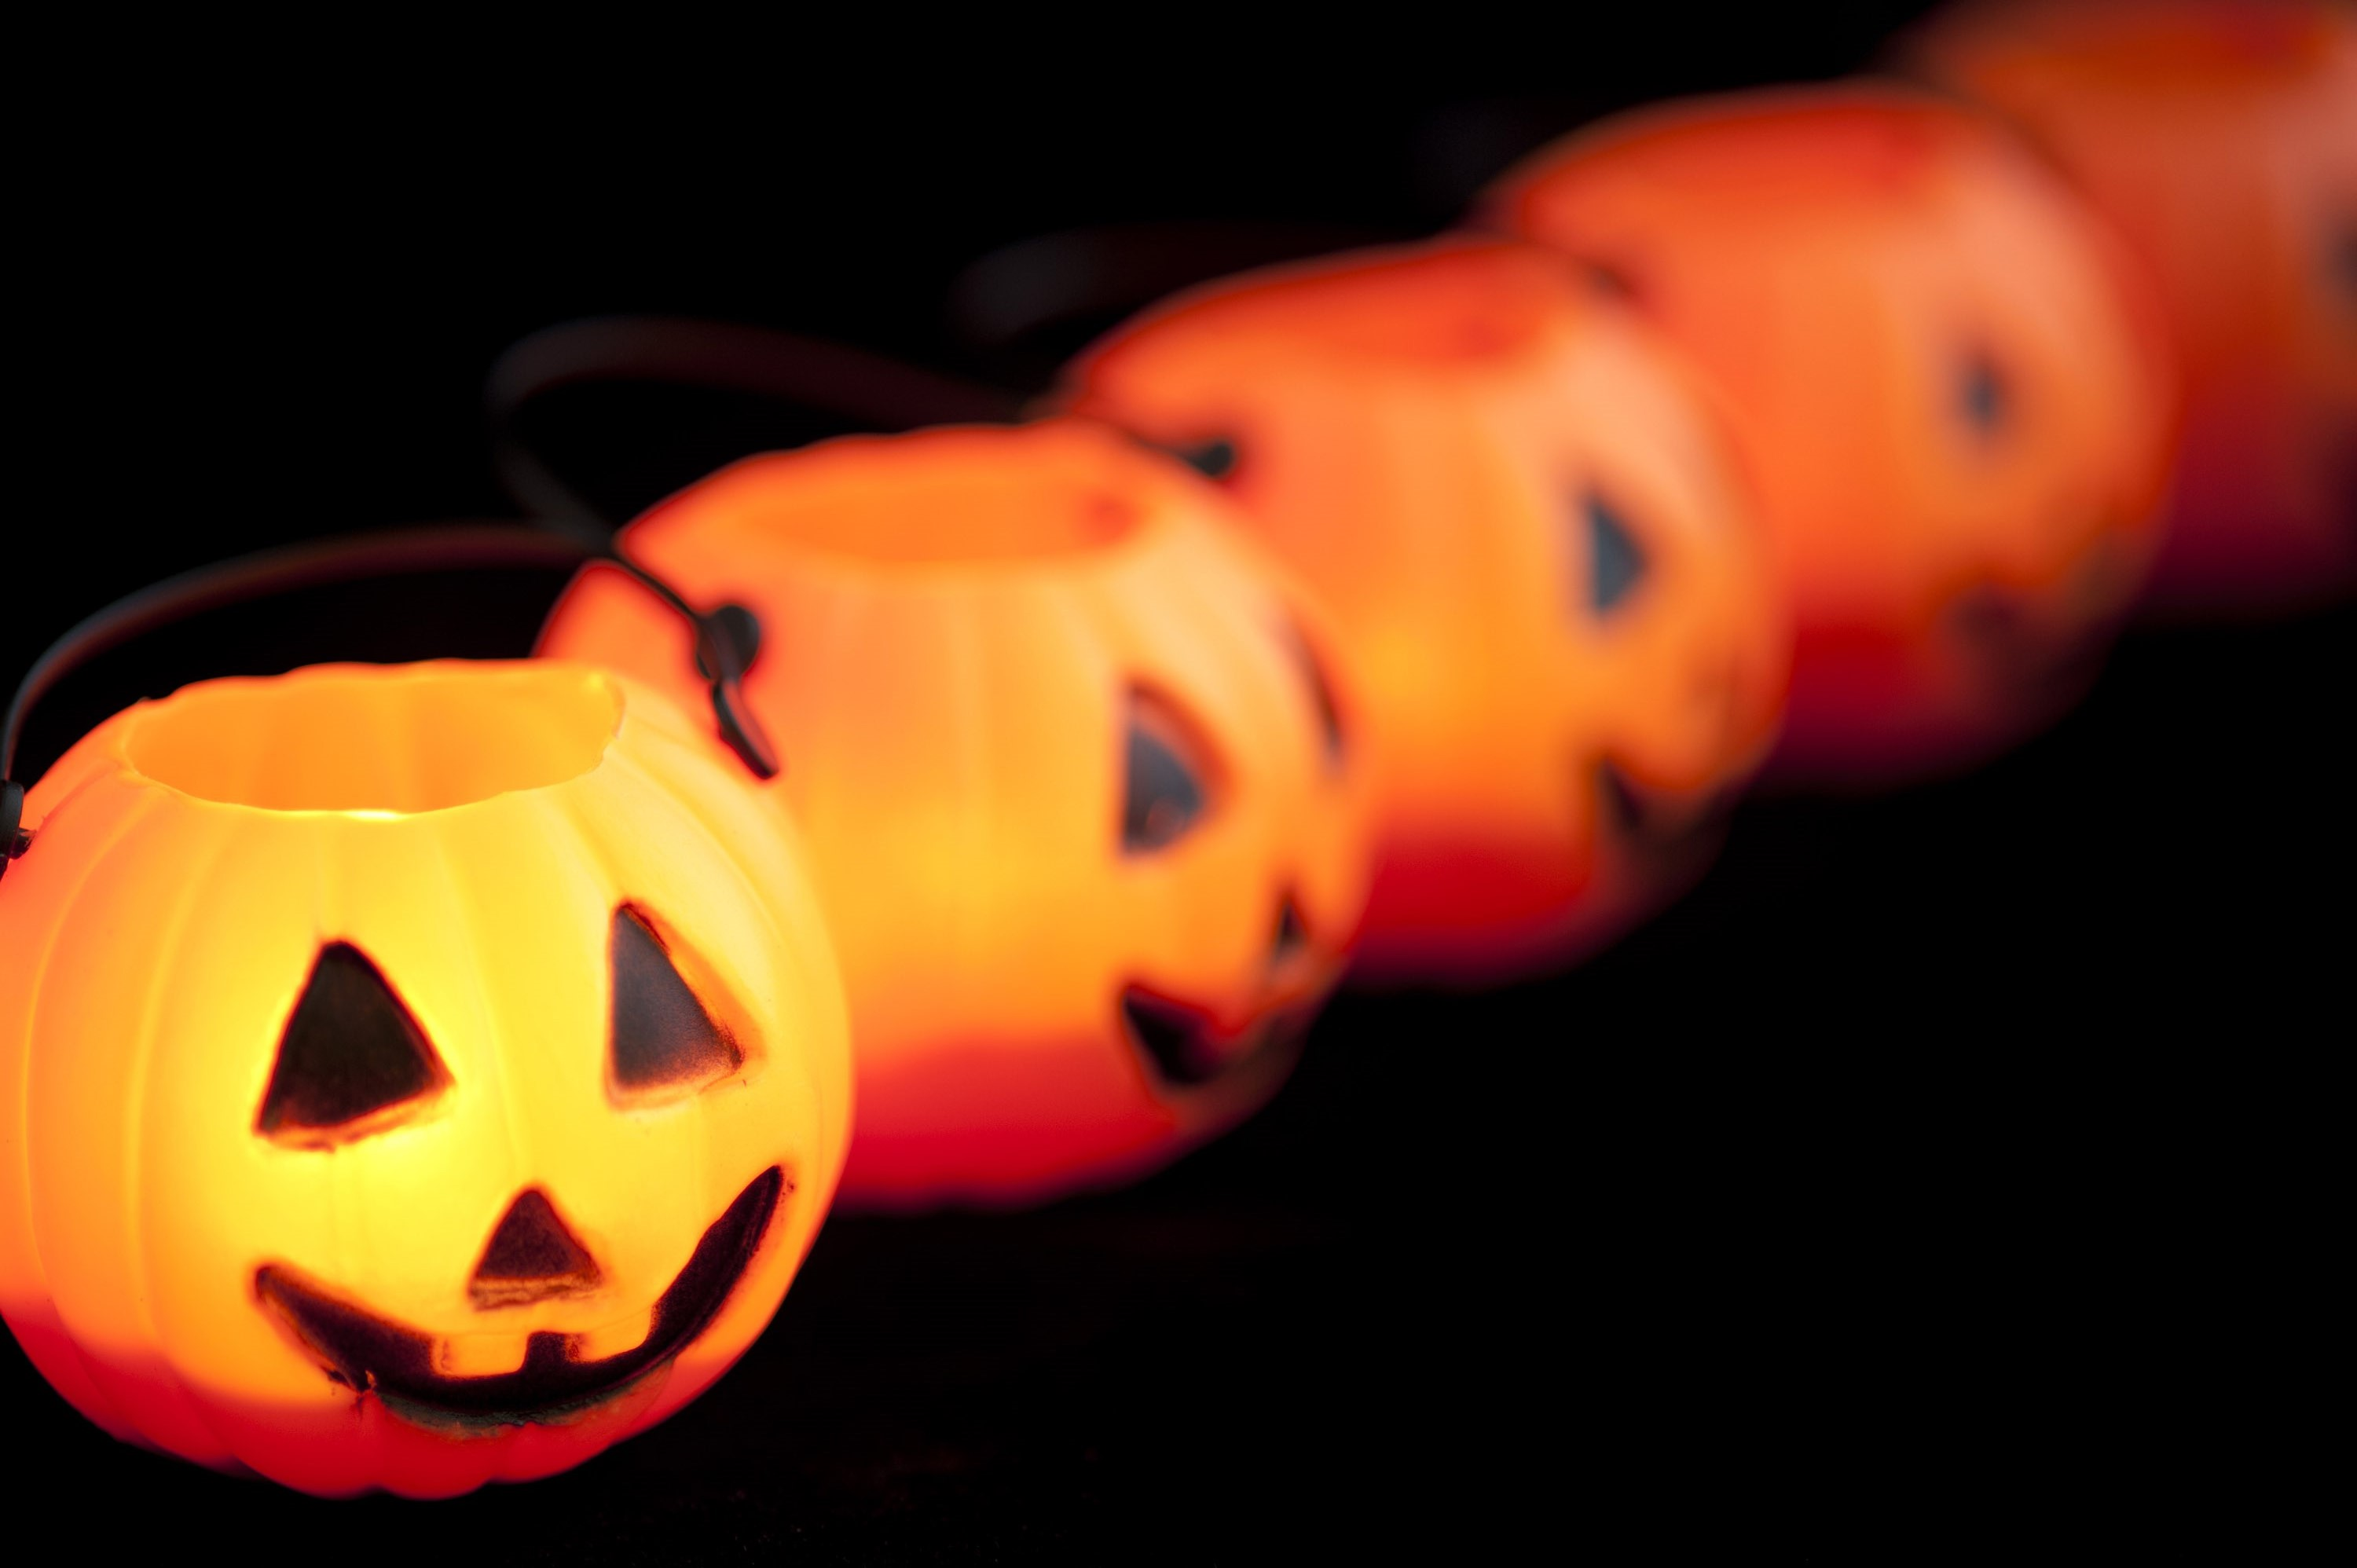 Row of creepy Halloween lantern ornaments arranged in a diagonal receding row with focus to the first lantern on the left, over a dark background